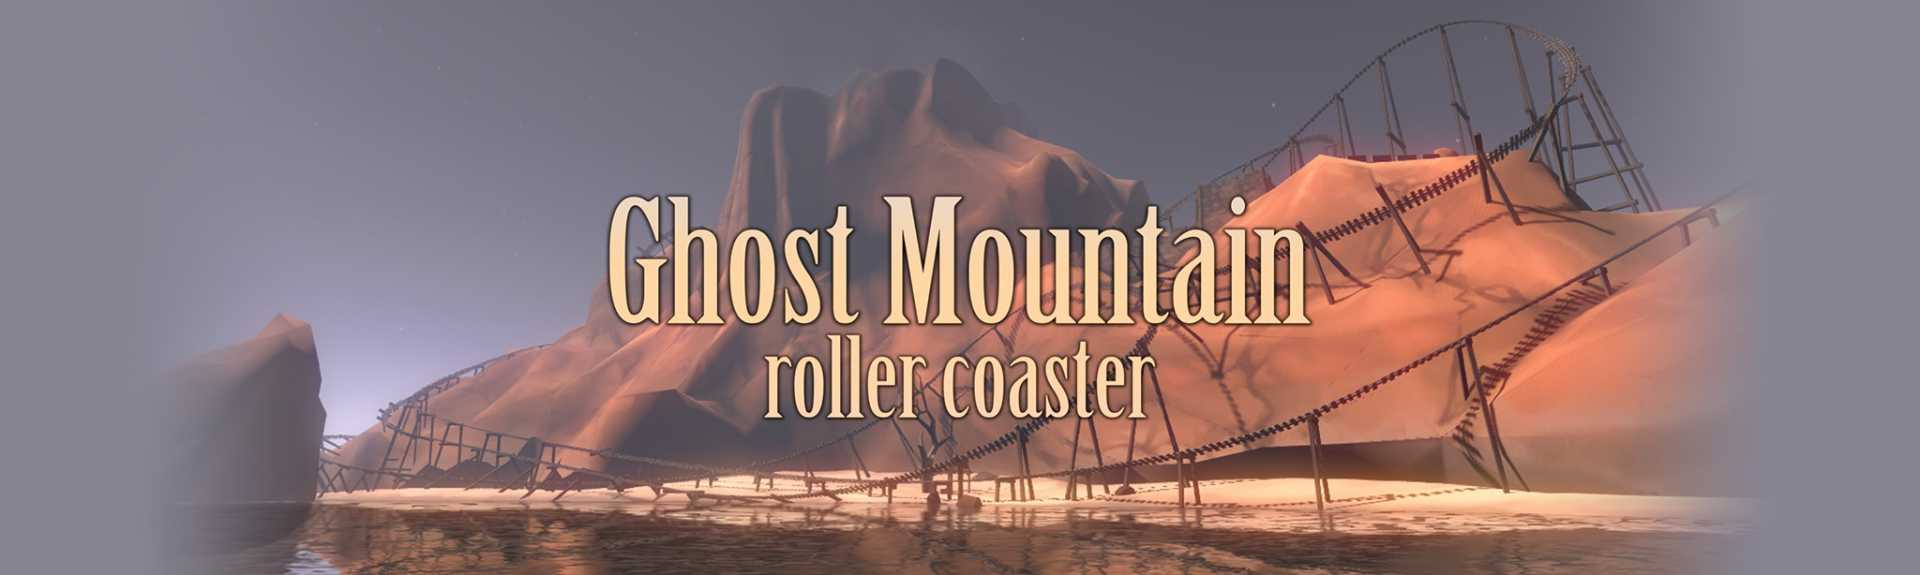 Ghost Mountain Roller Coaster